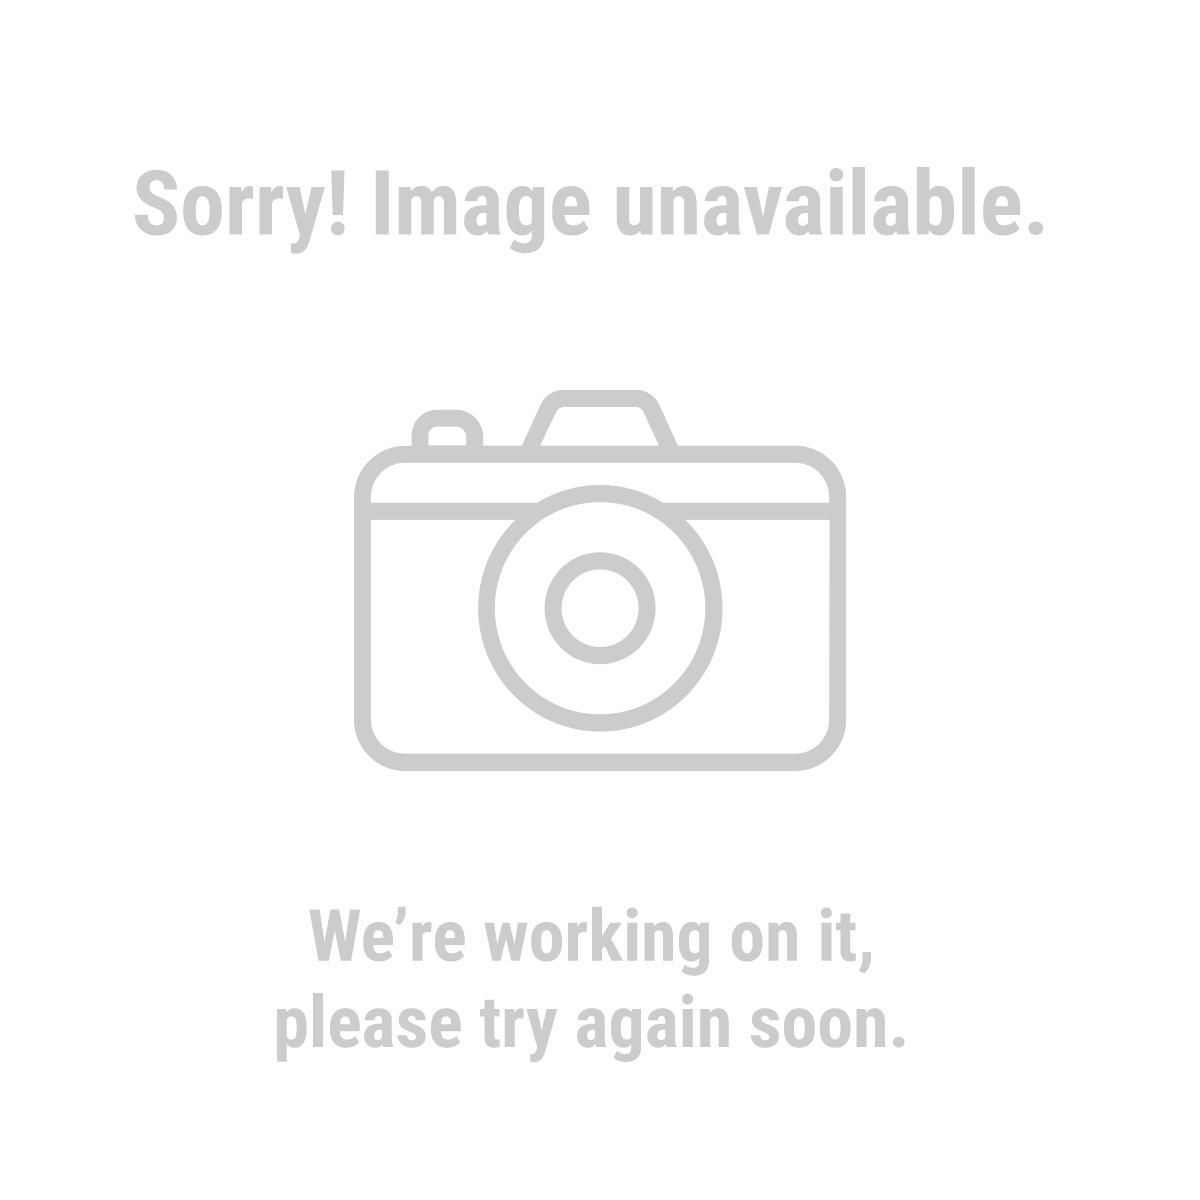 Krause & Becker 61499 4 In. Chip Brush